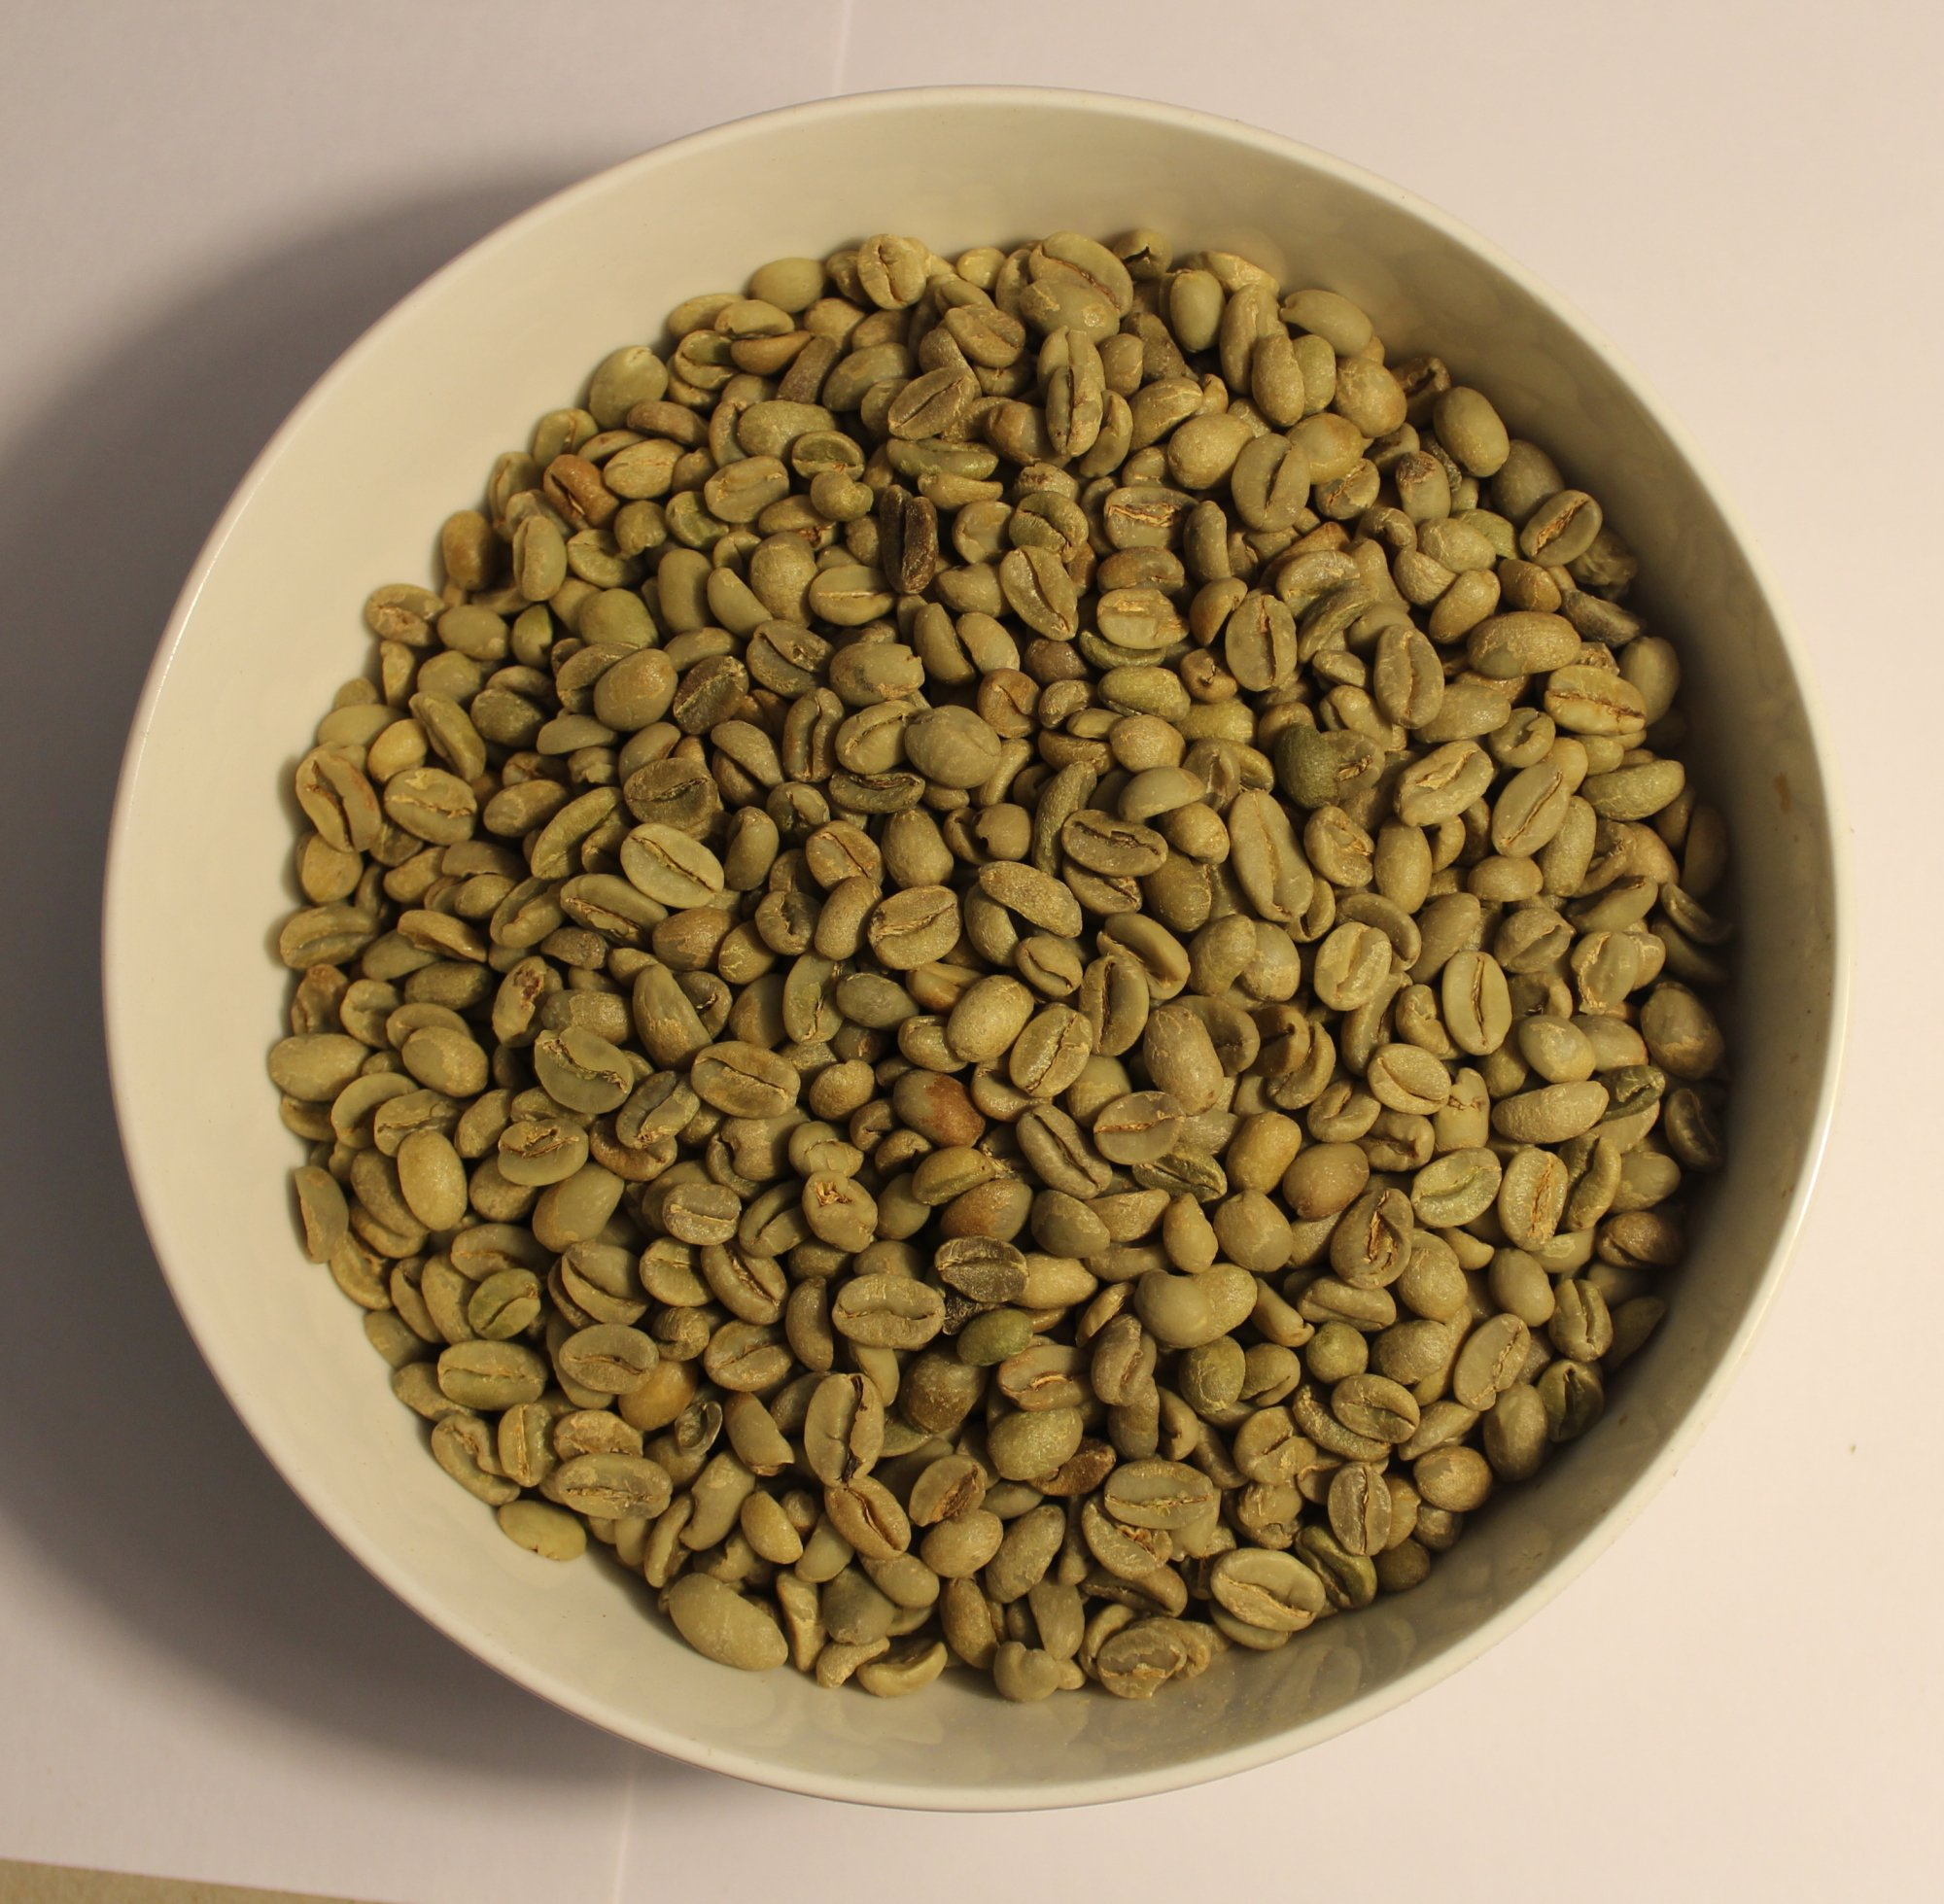 Ethiopia Guji Natural - Oromia Region Grade 4 - Green (Unroasted) Coffee Beans (10 Pounds) by Grima Edema, Guji, Oromia Region, Ethiopia1